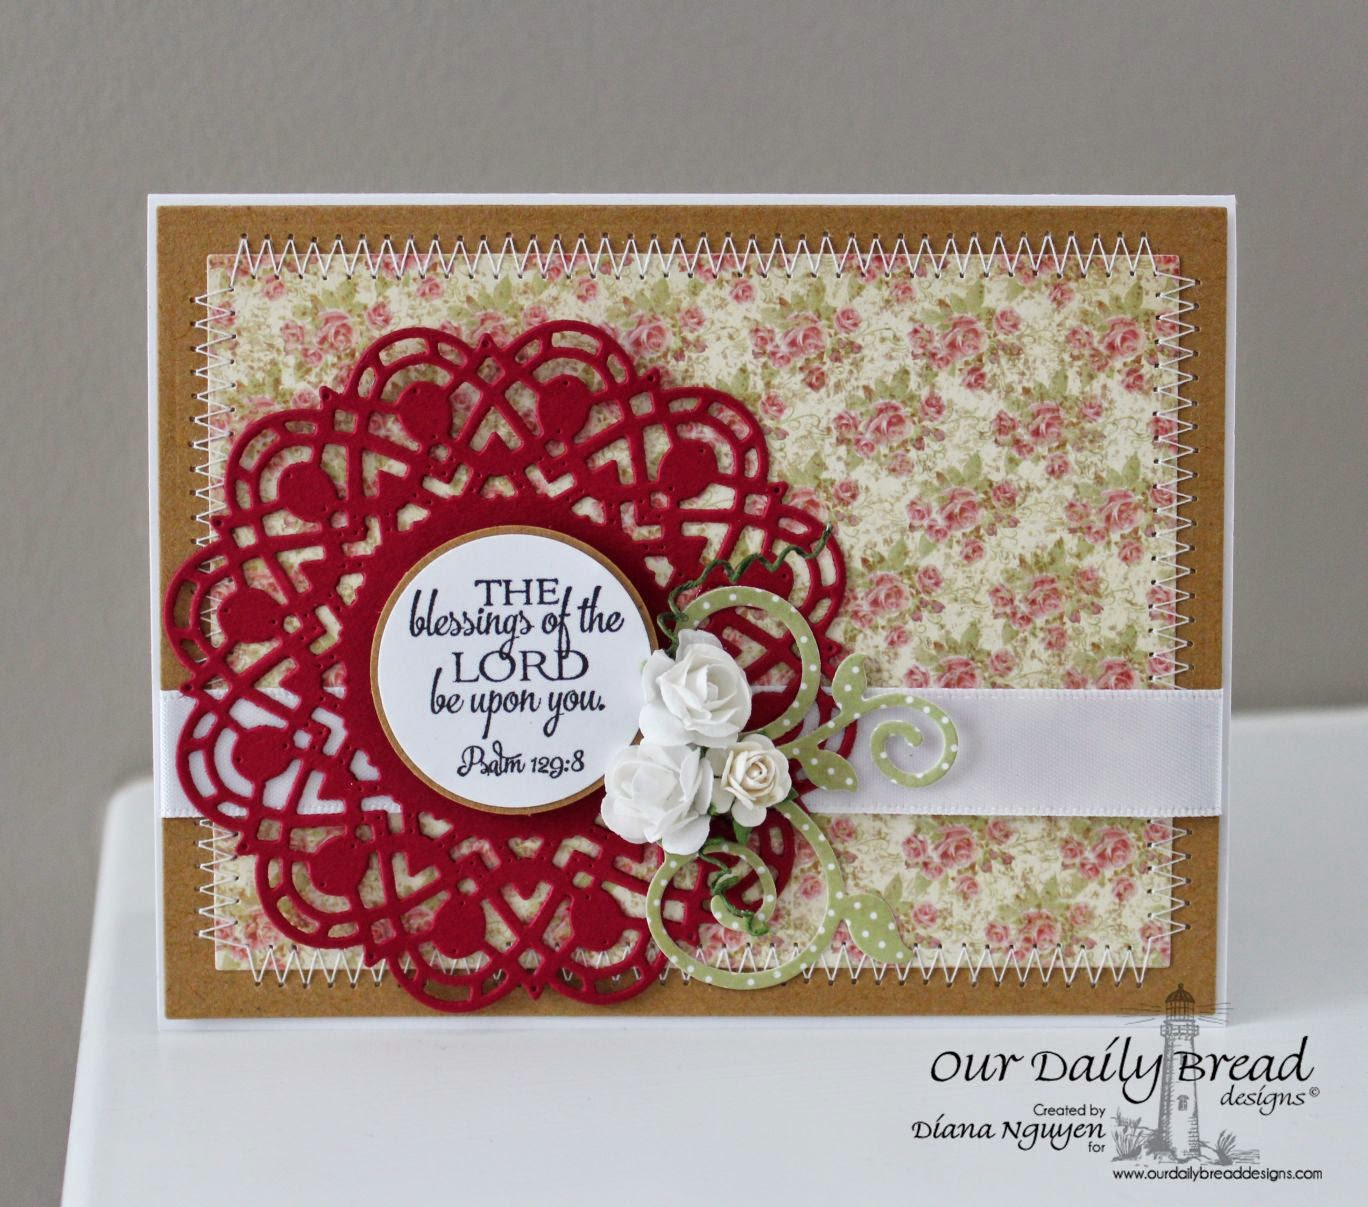 Our Daily Bread Designs, Blushing Rose Paper Collection, Fancy Foliage Dies, Doily Blessings, Doily, Designed by Diana Nguyen